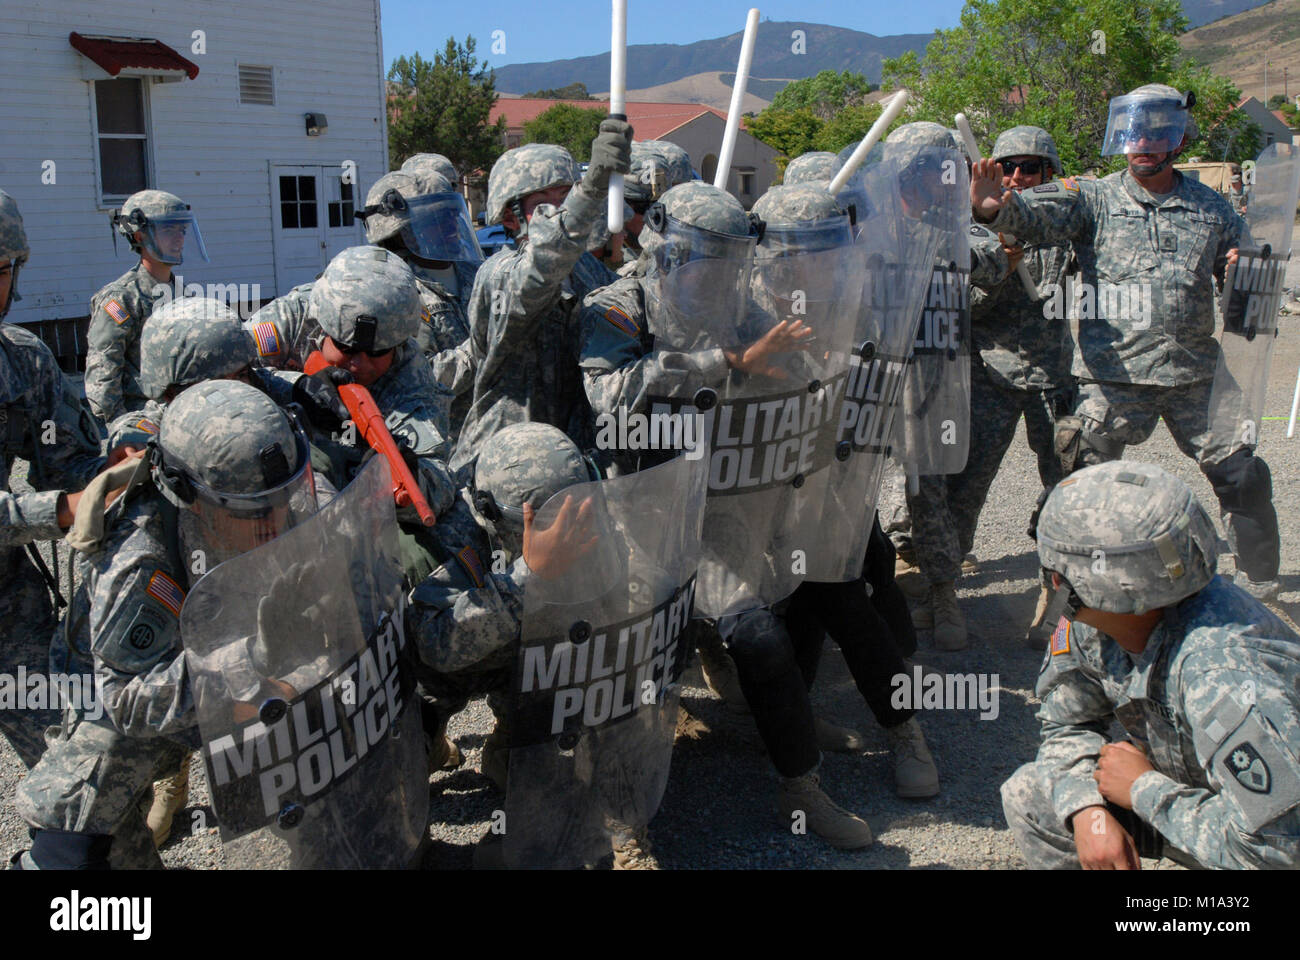 110716-A-XB575-017 Members of the 40th Military Police Company, 185th Military Police Battalion, 49th  Military - Stock Image